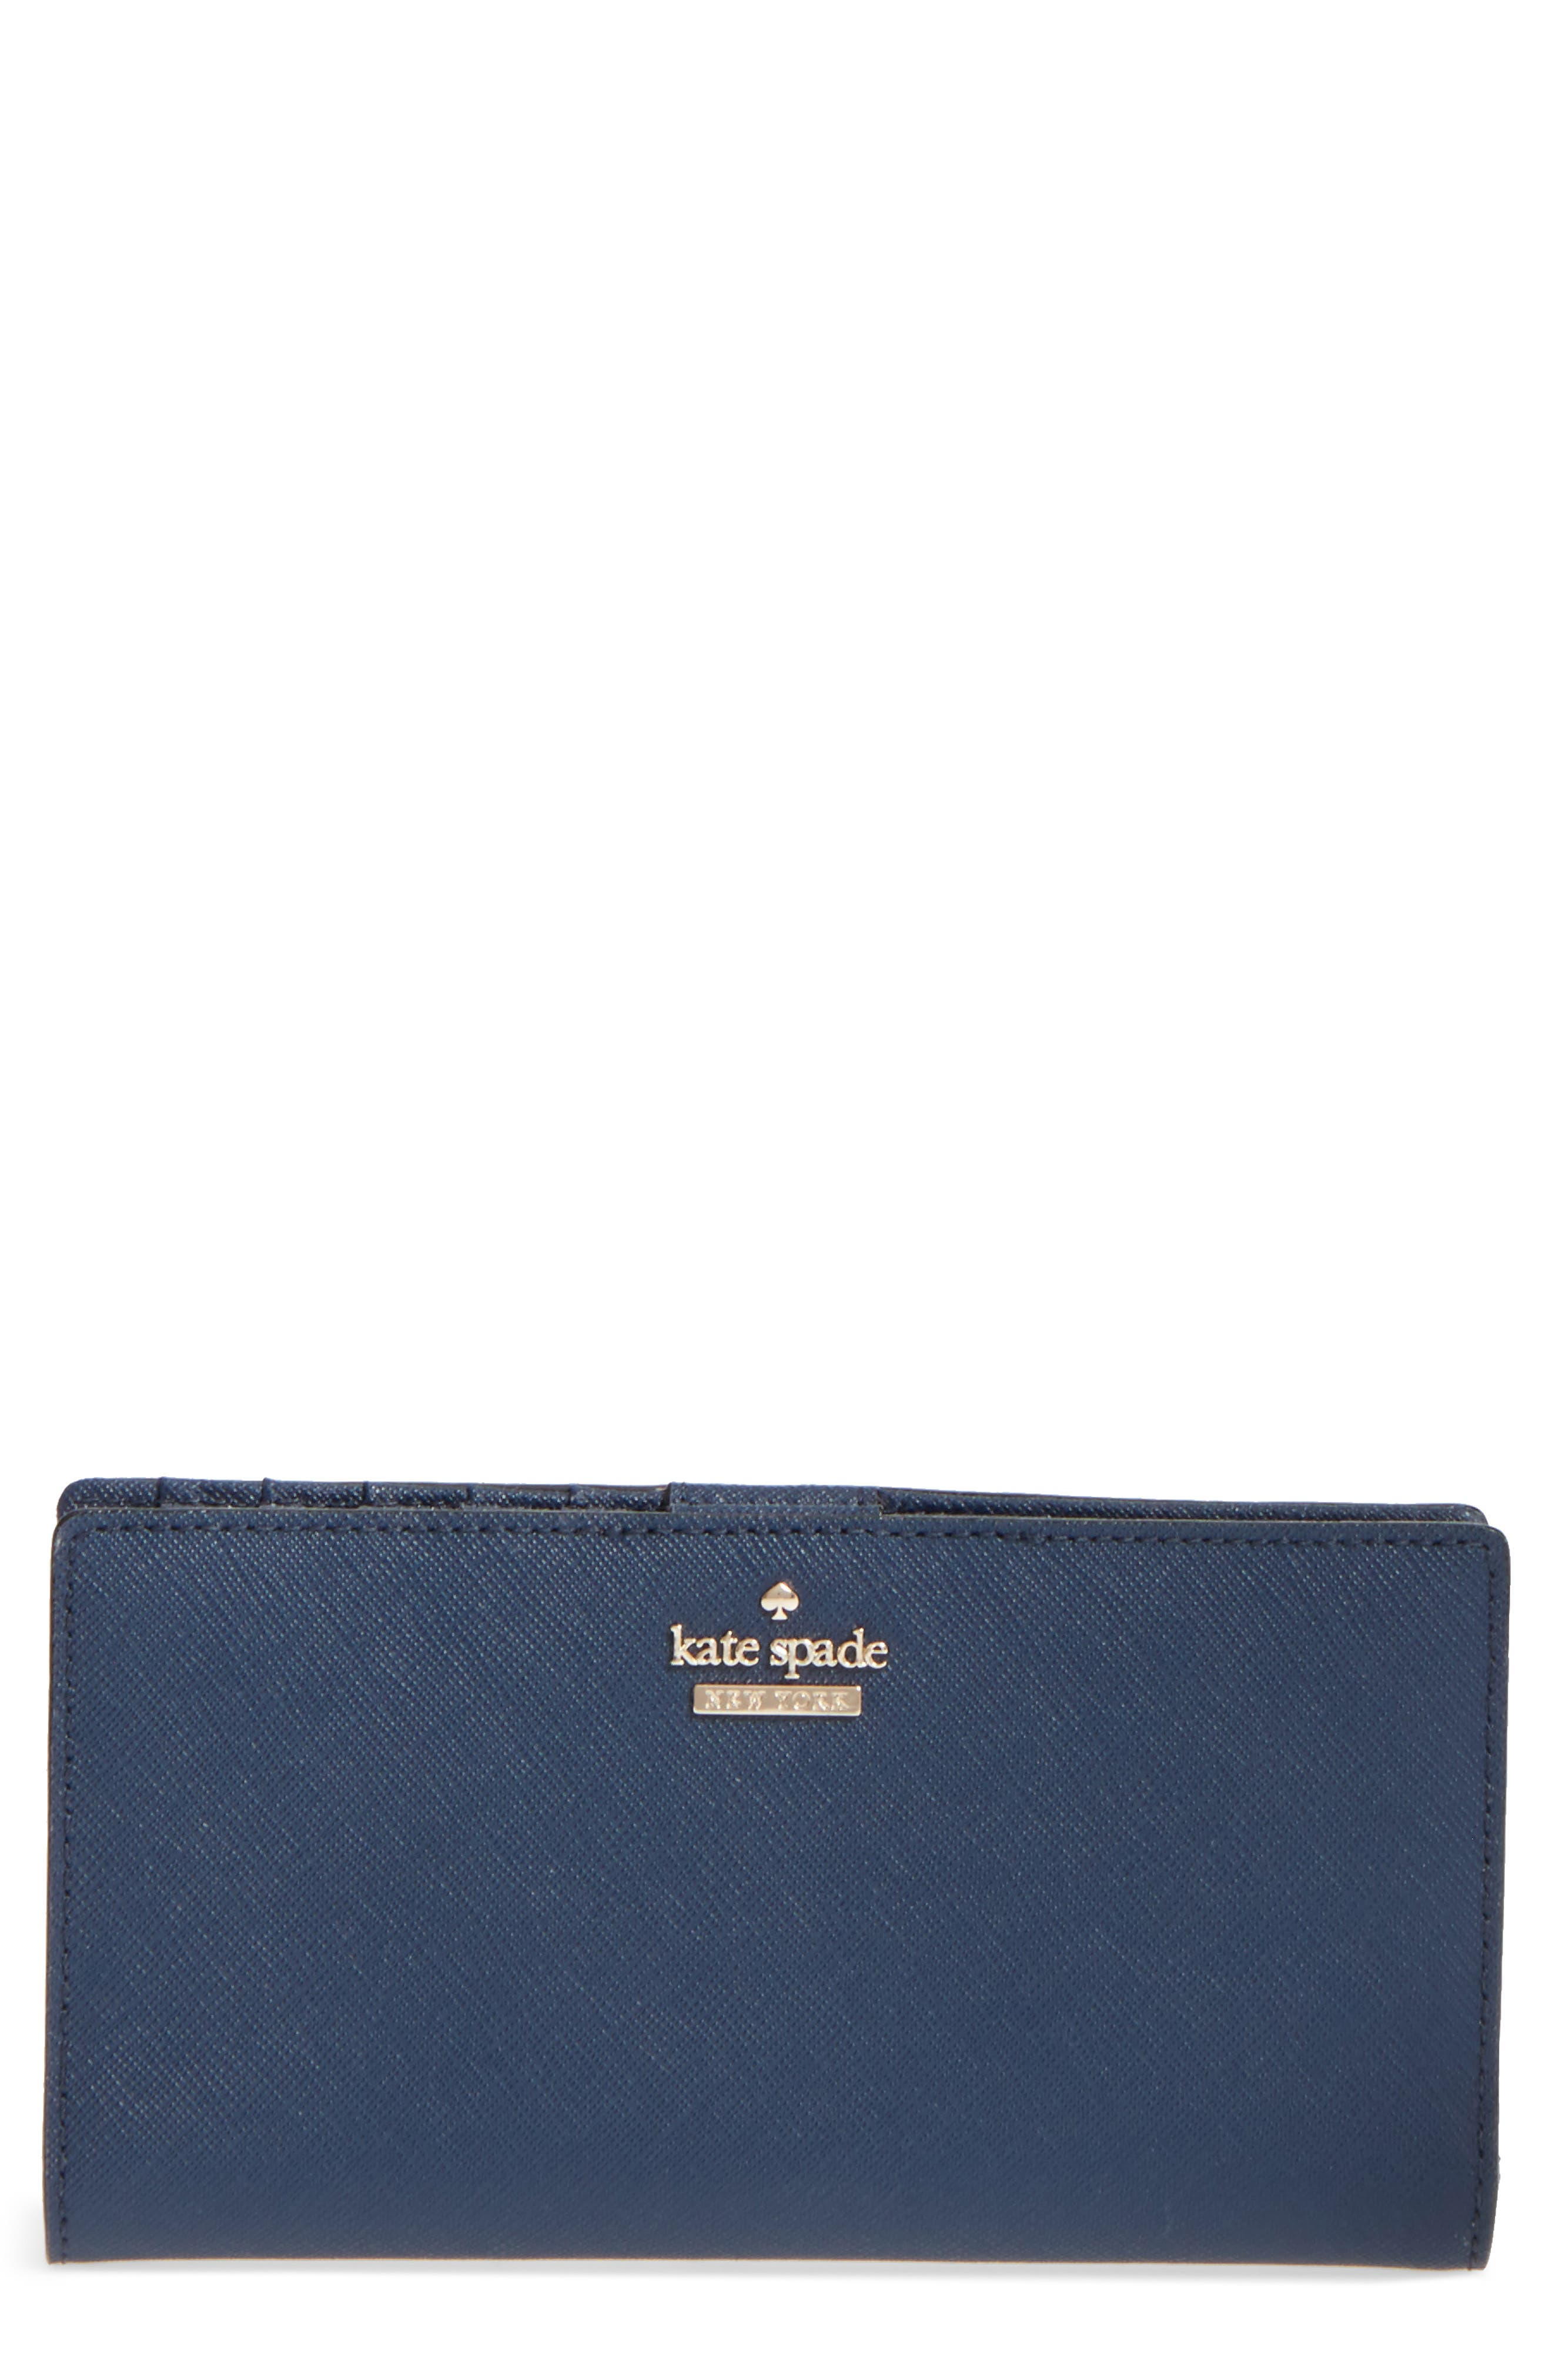 'cameron street - stacy' textured leather wallet,                             Main thumbnail 1, color,                             255